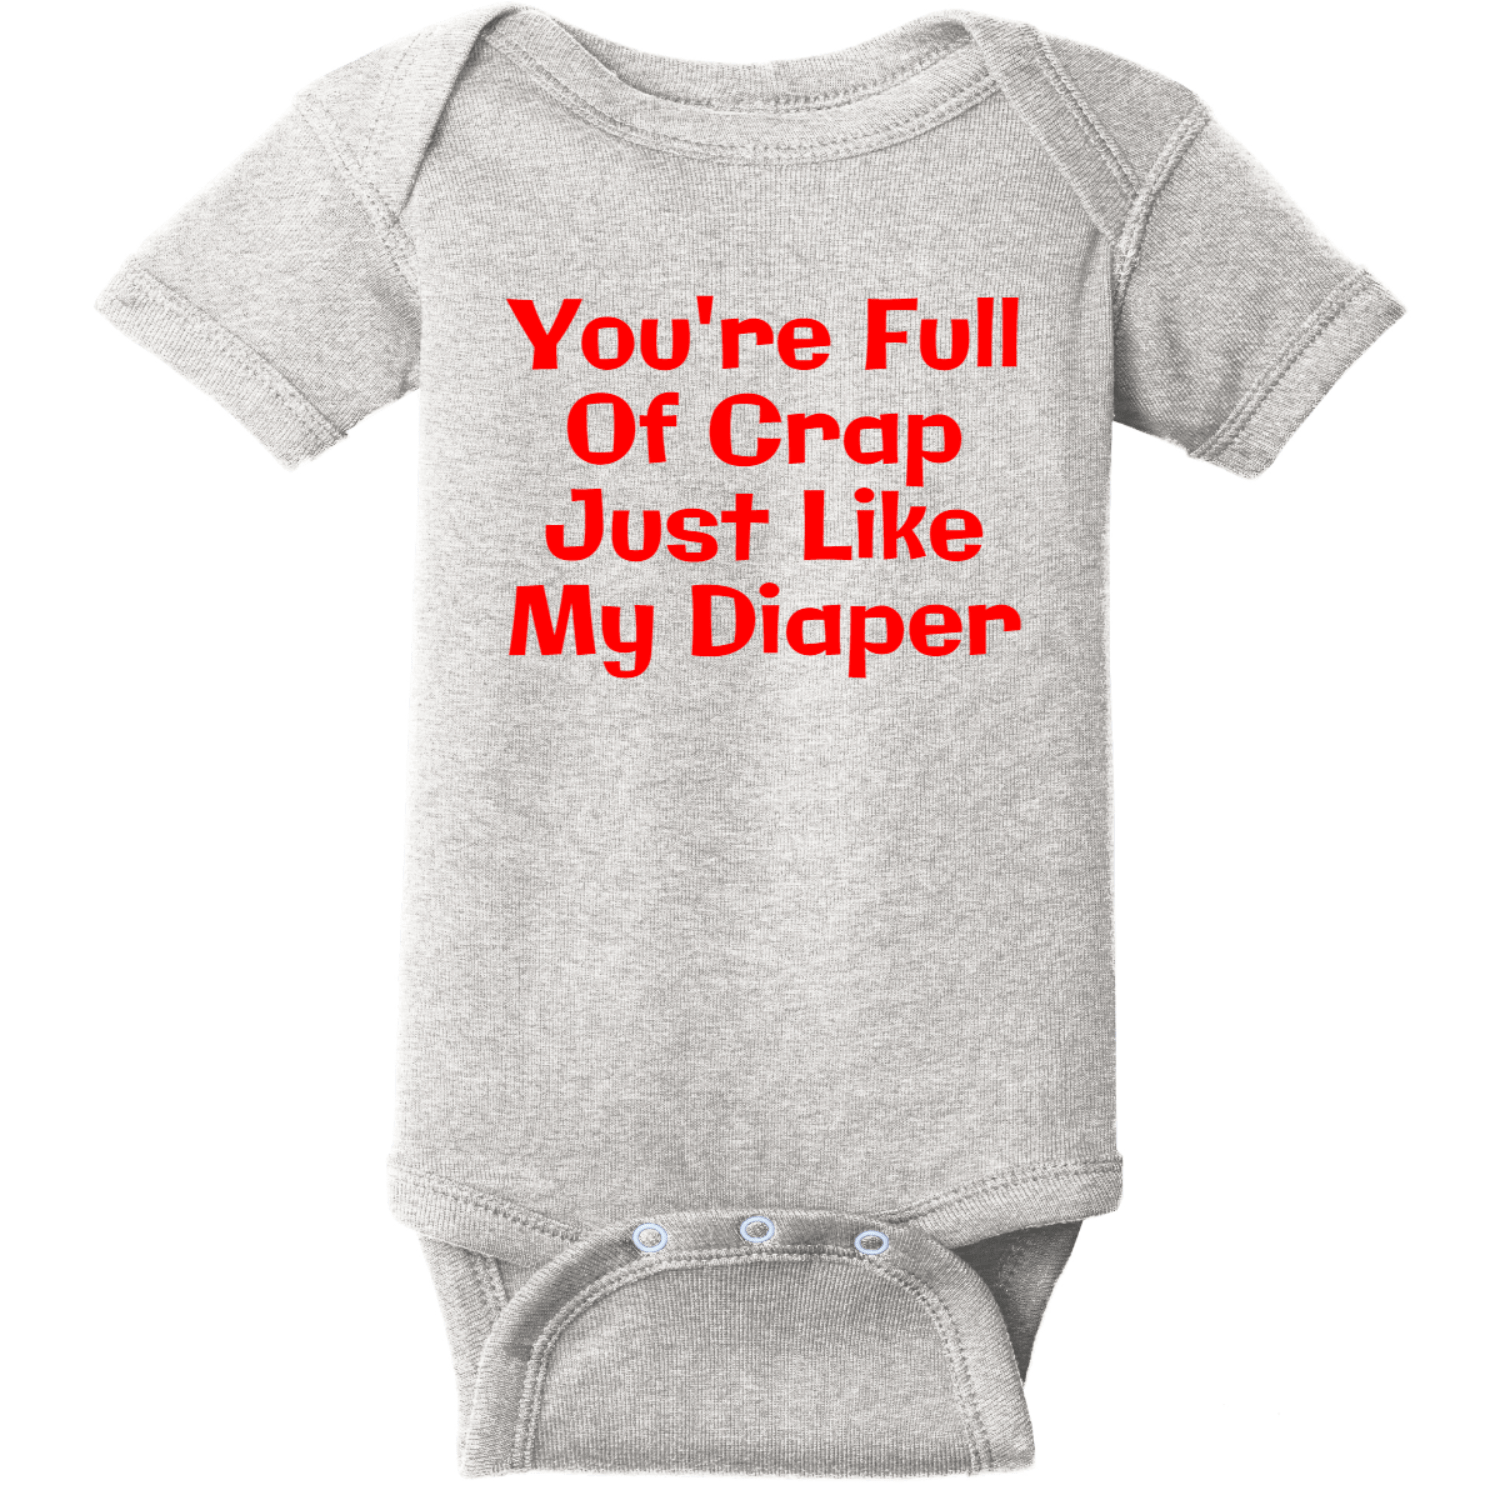 You Are Full Of Crap Like My Diaper Baby Bodysuit Heather Rabbit Skins Infant Short Sleeve Infant Rib Bodysuit RS4400